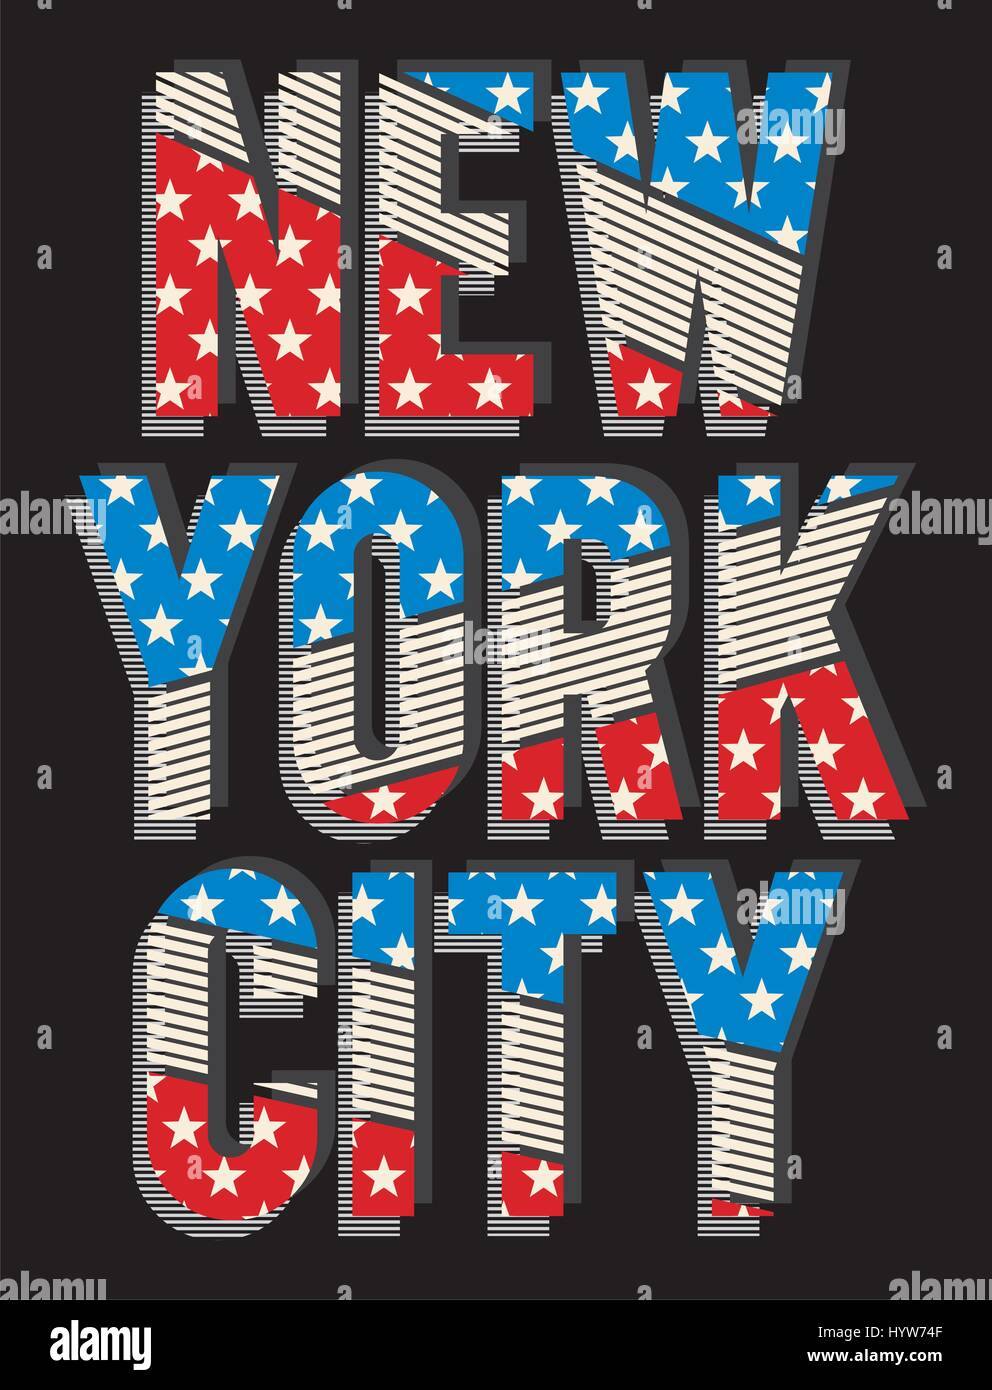 T shirt poster design - Retro New York Typography Design For T Shirt Poster Festival Vector